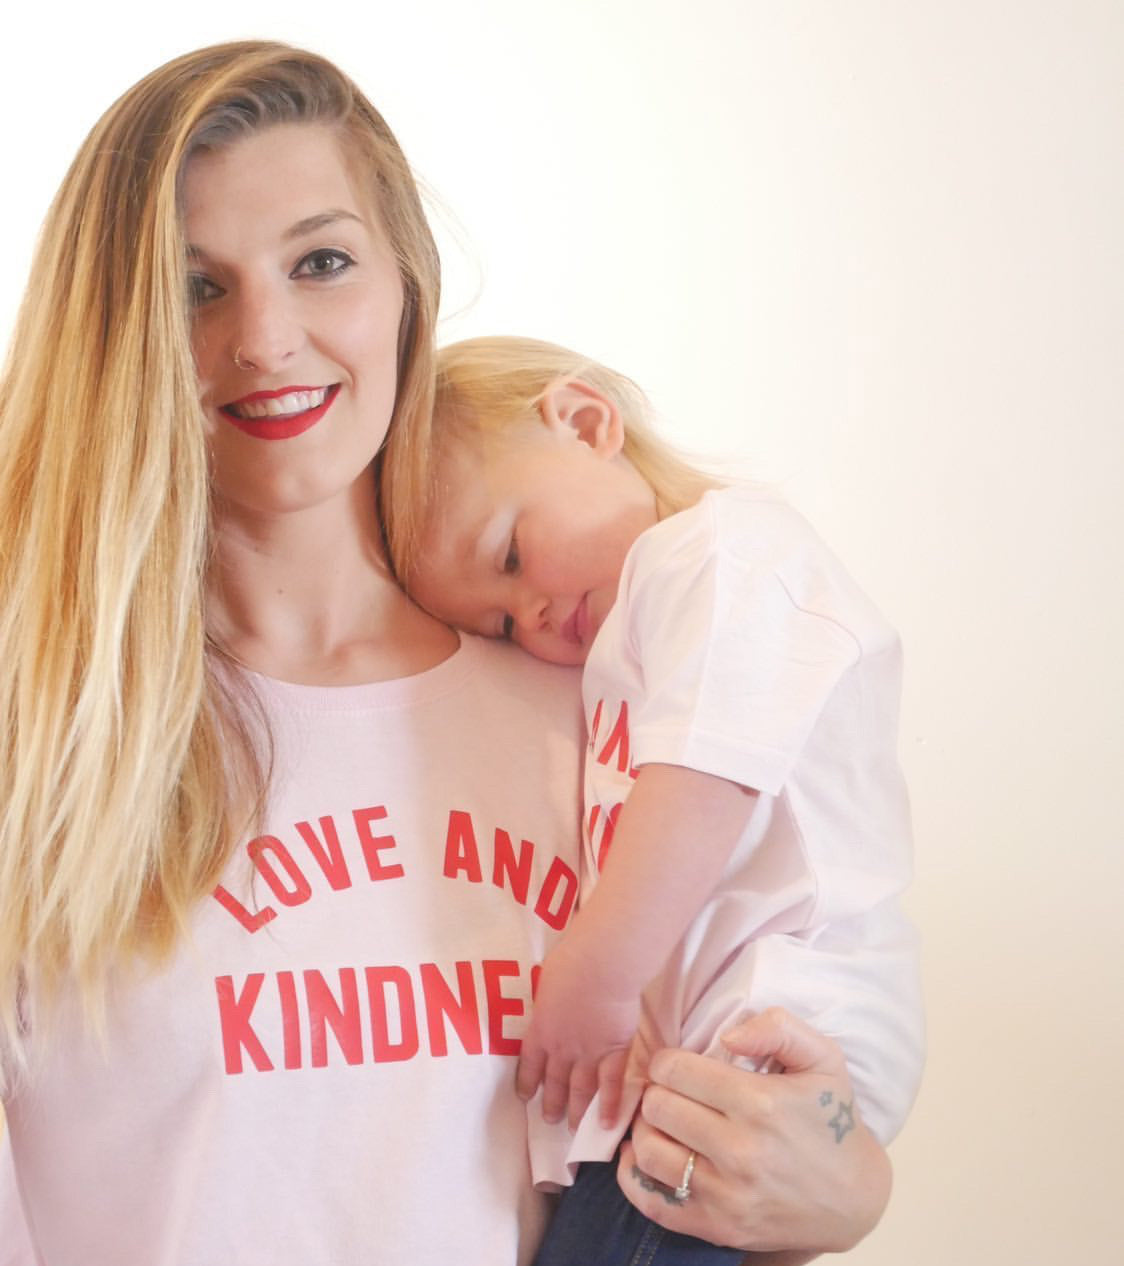 Adult Love And Kindness T-Shirt